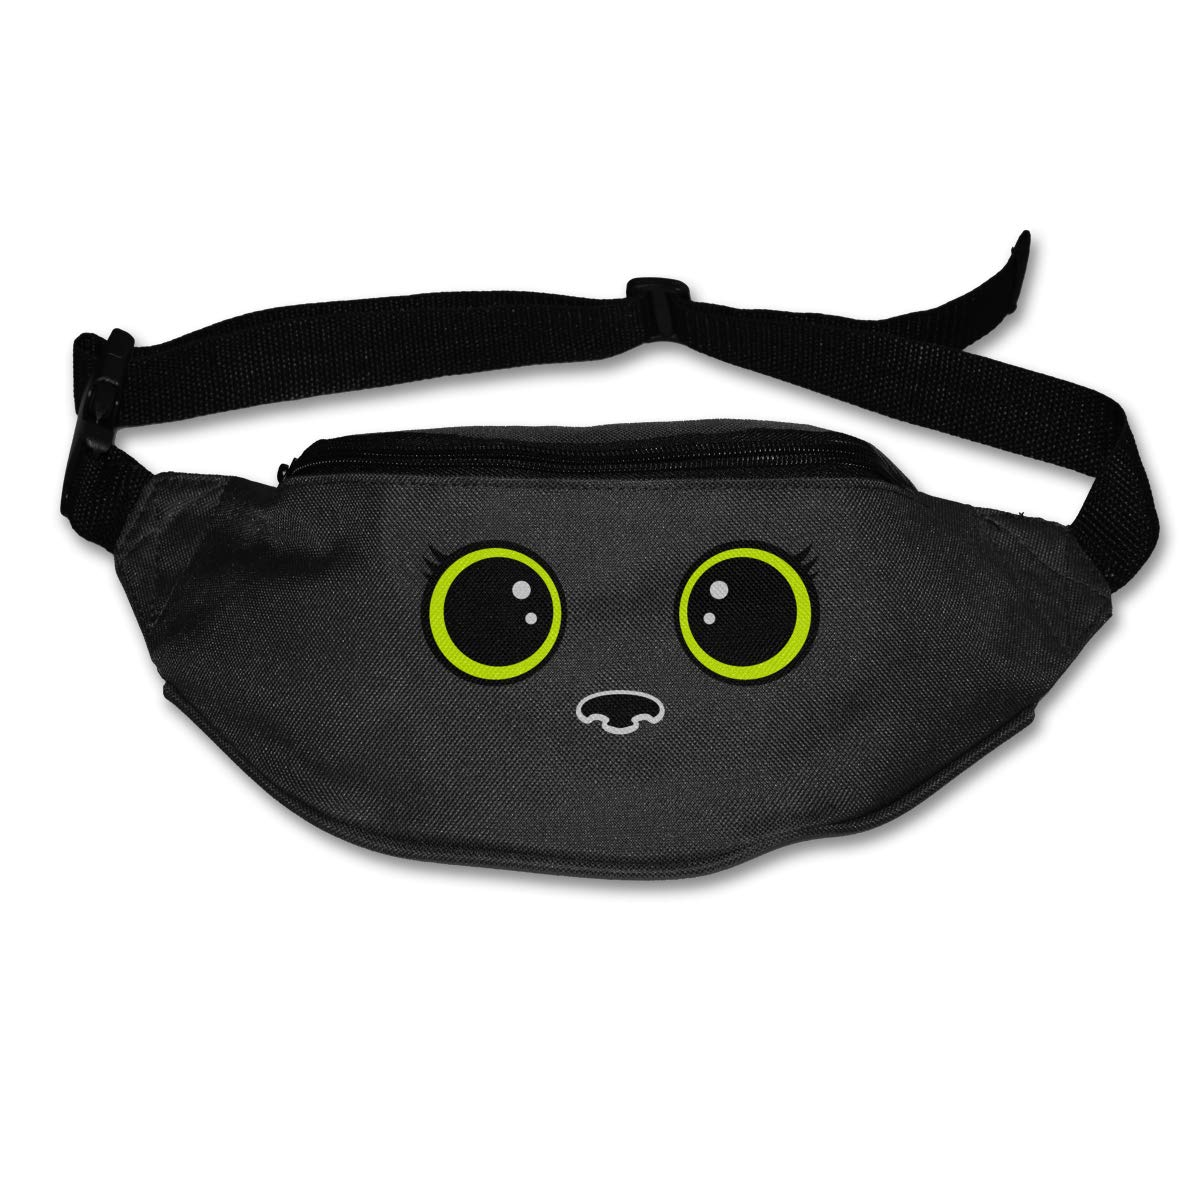 Cute Eyelash Sport Waist Pack Fanny Pack Adjustable For Hike